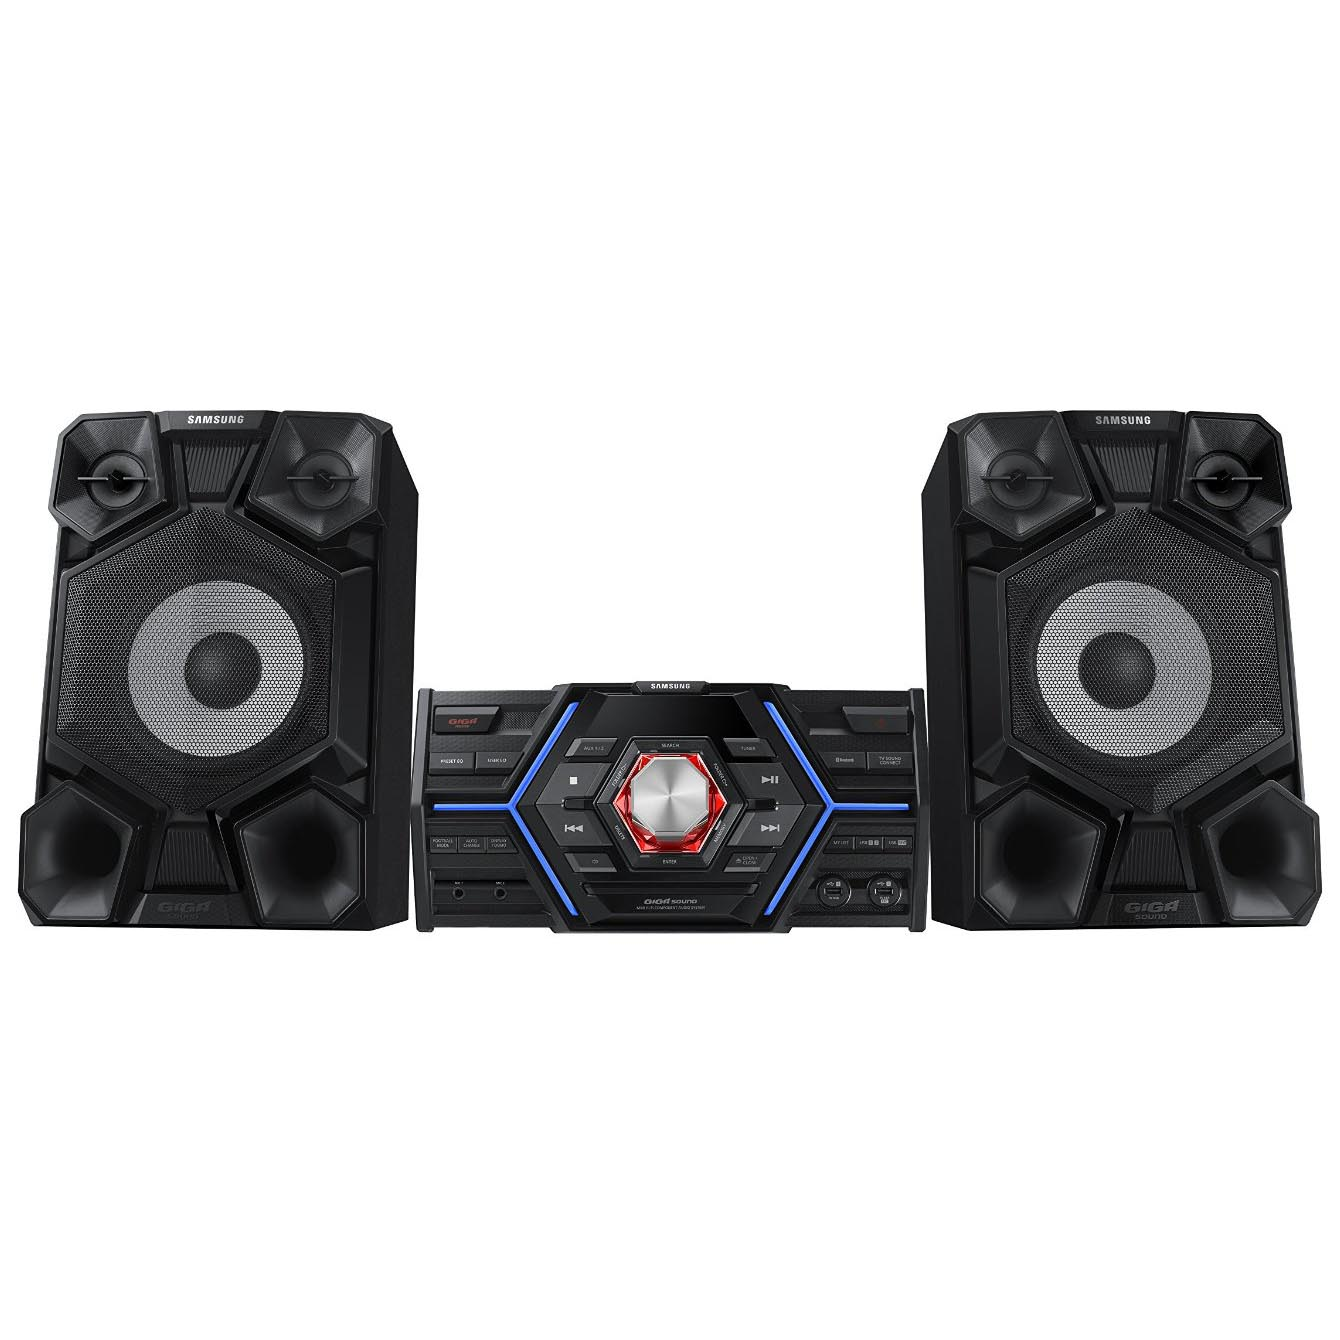 Samsung 4.0 Channel 1600W Wired Audio Giga Sound System (Certified Refurbished)